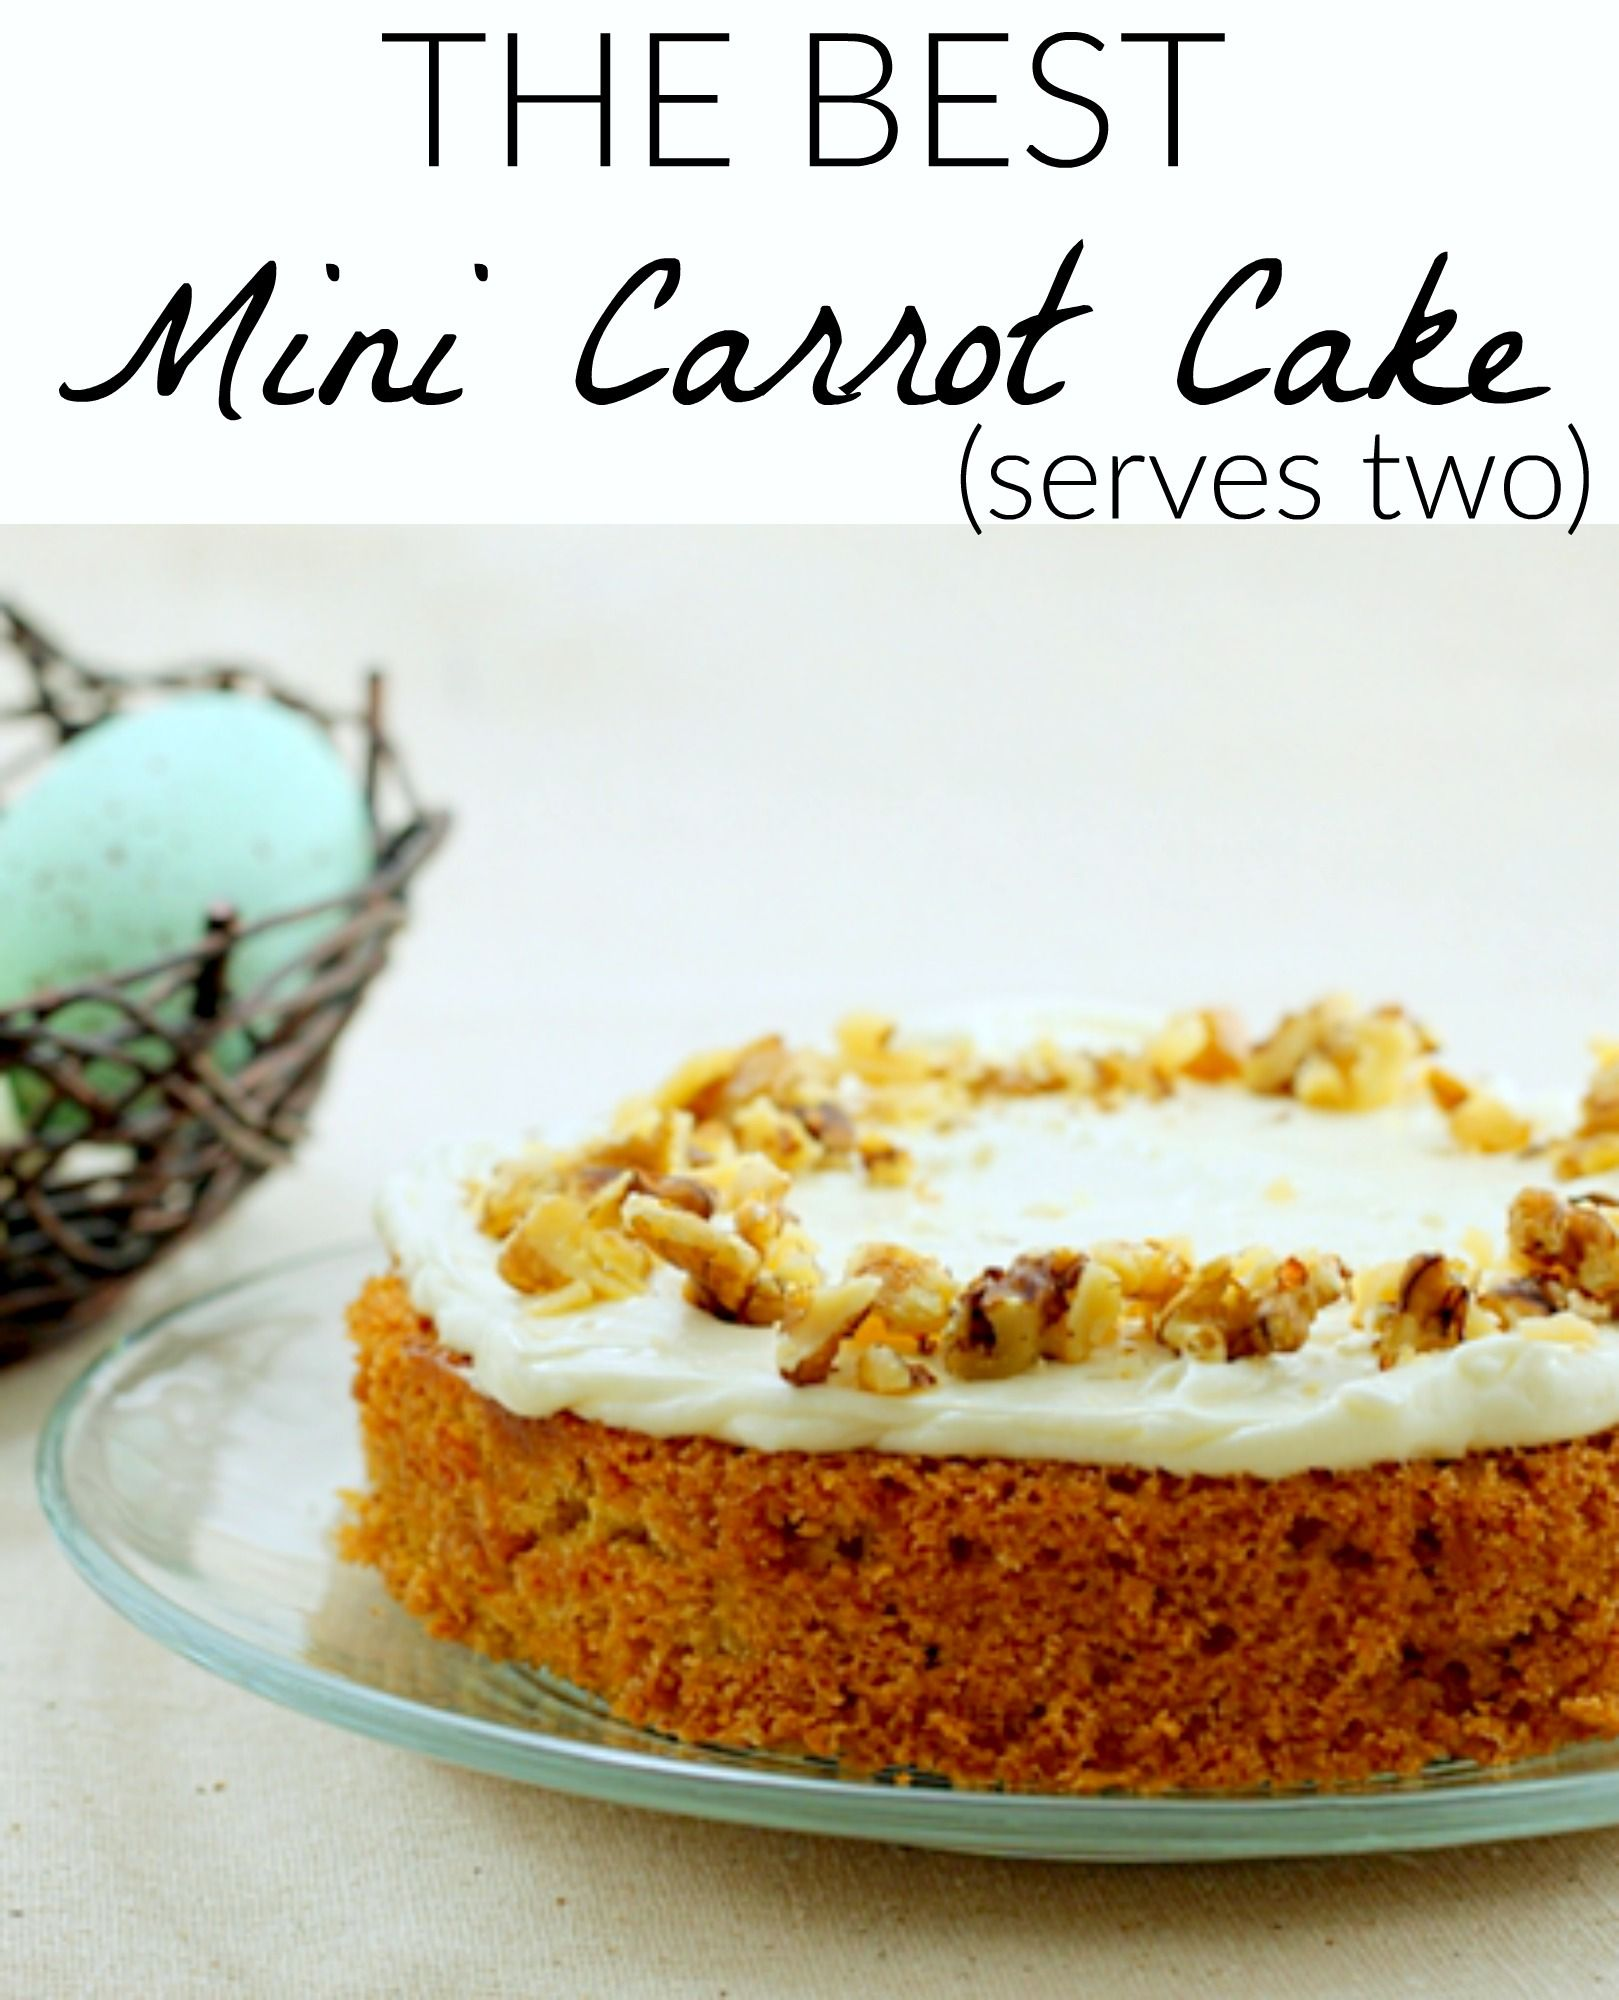 Small Carrot Cake From Scratch. Better Than Publix Carrot